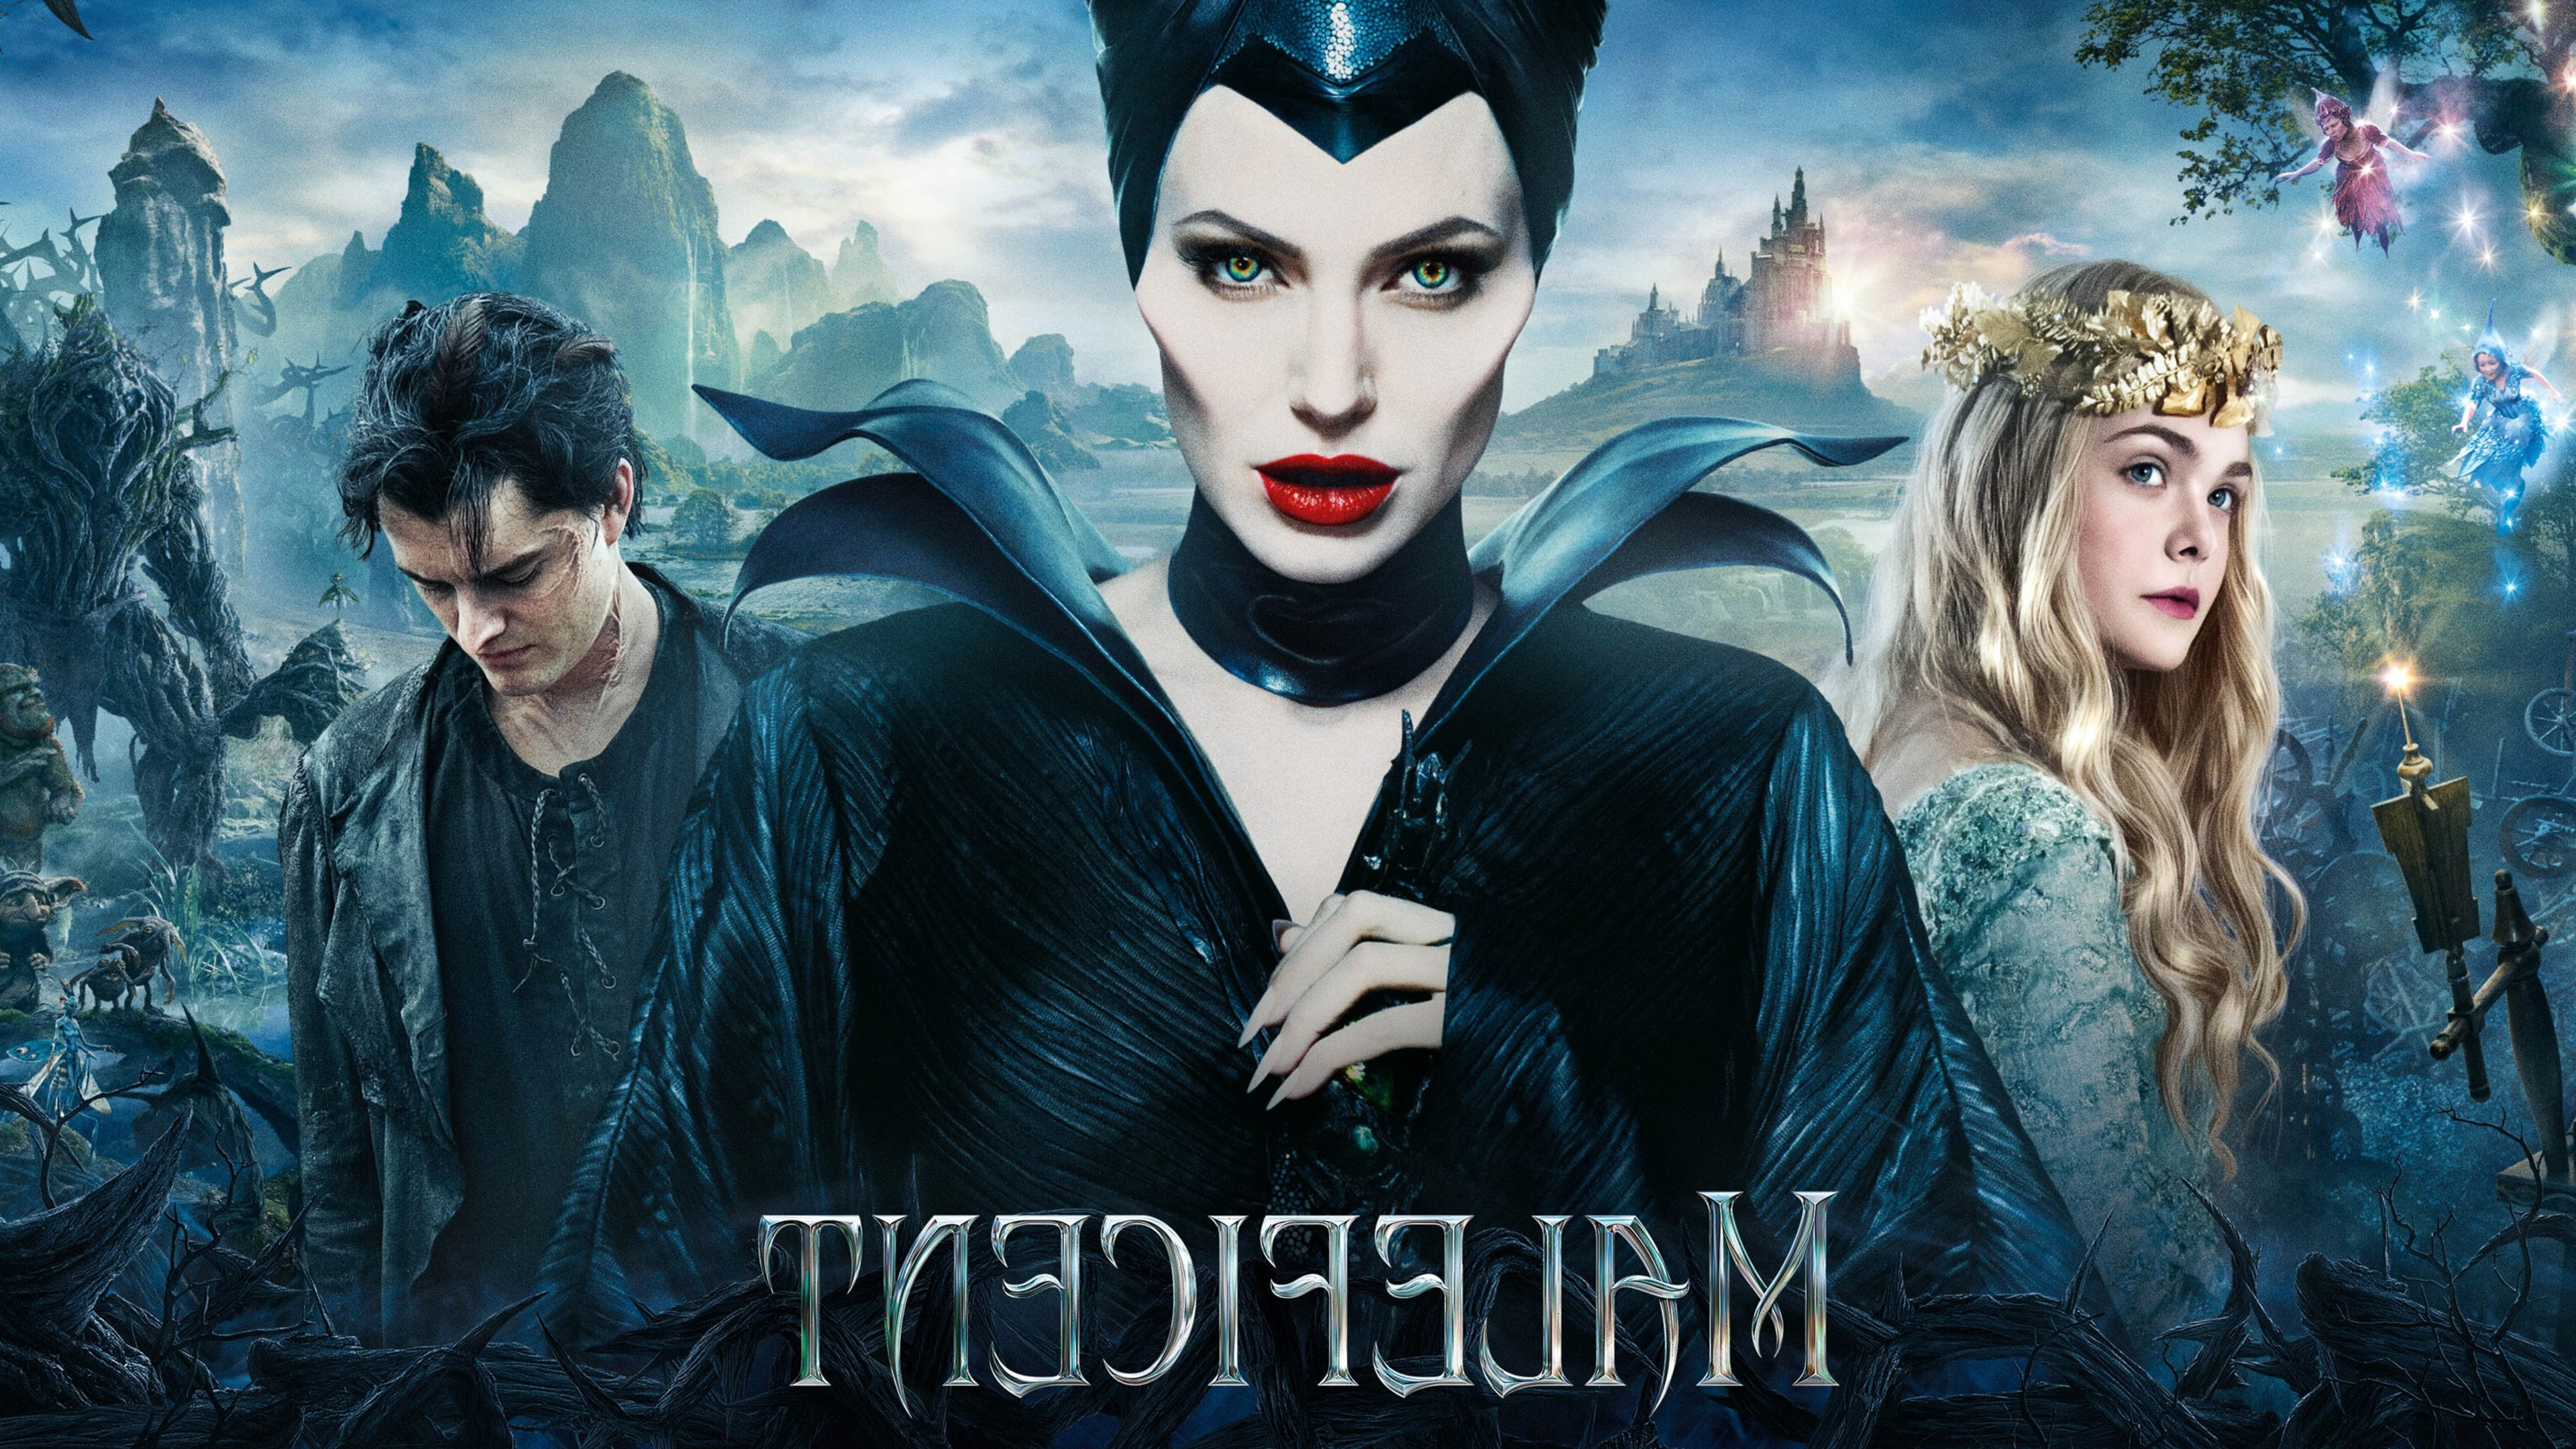 Maleficent Wallpapers Images Backgrounds Photos and Pictures